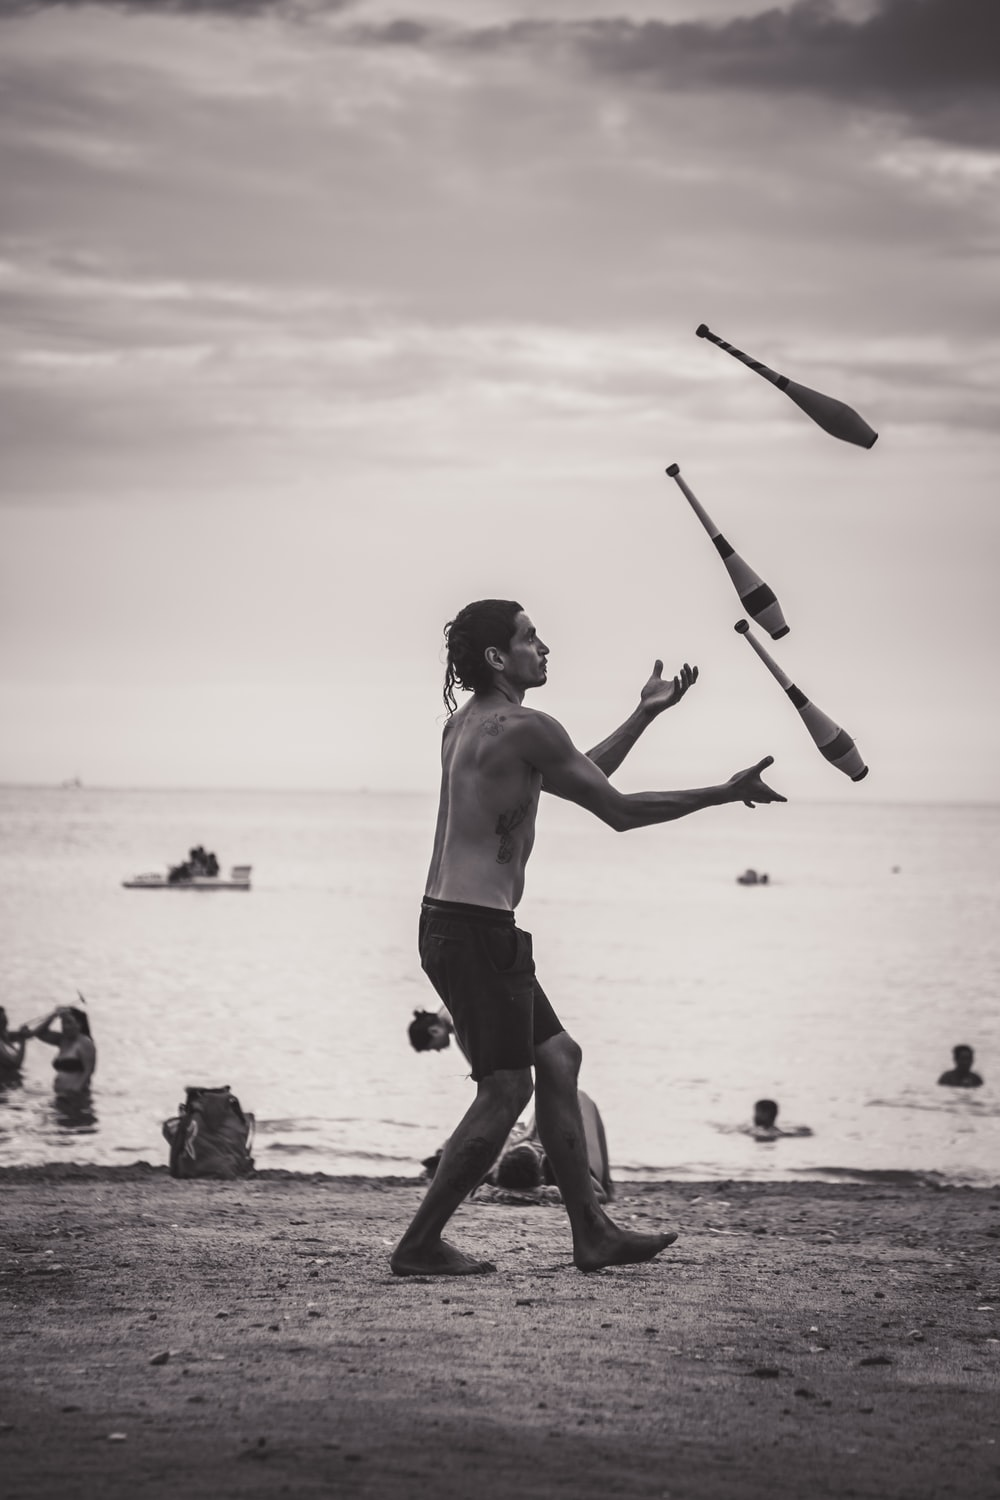 grayscale photo of man juggling on shore